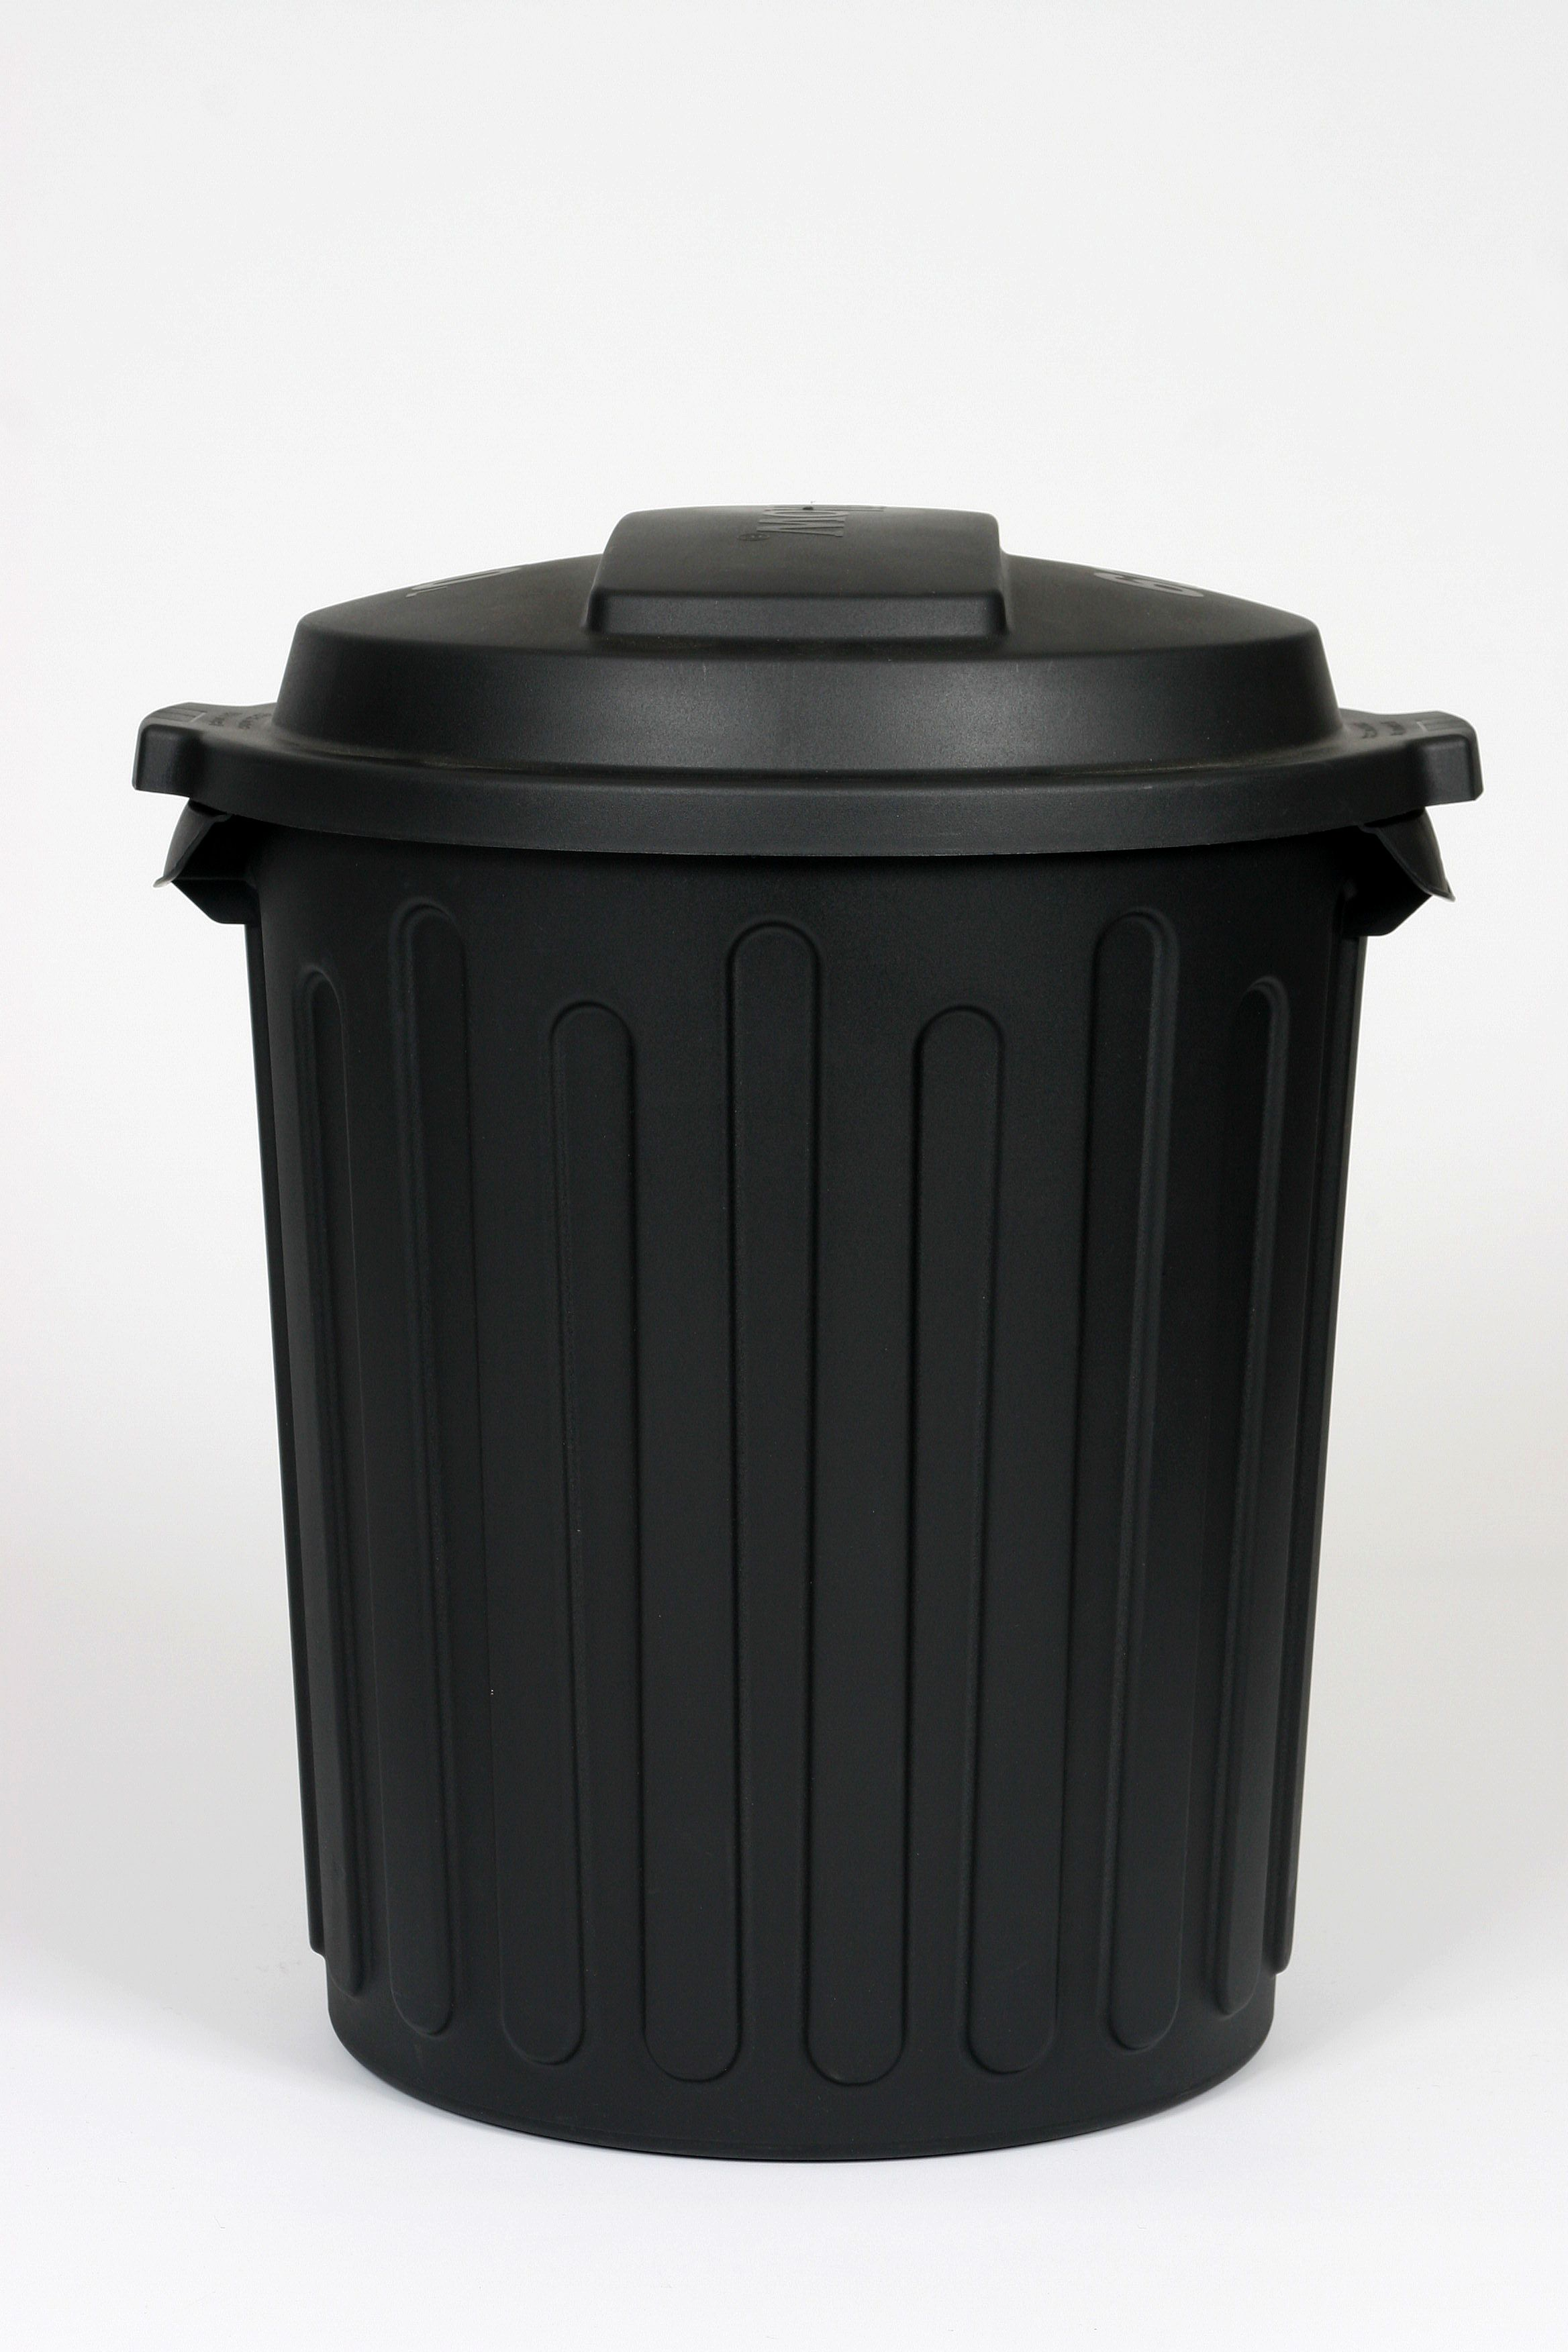 Willow 60l Rubbish Bin Bunnings Warehouse Use For